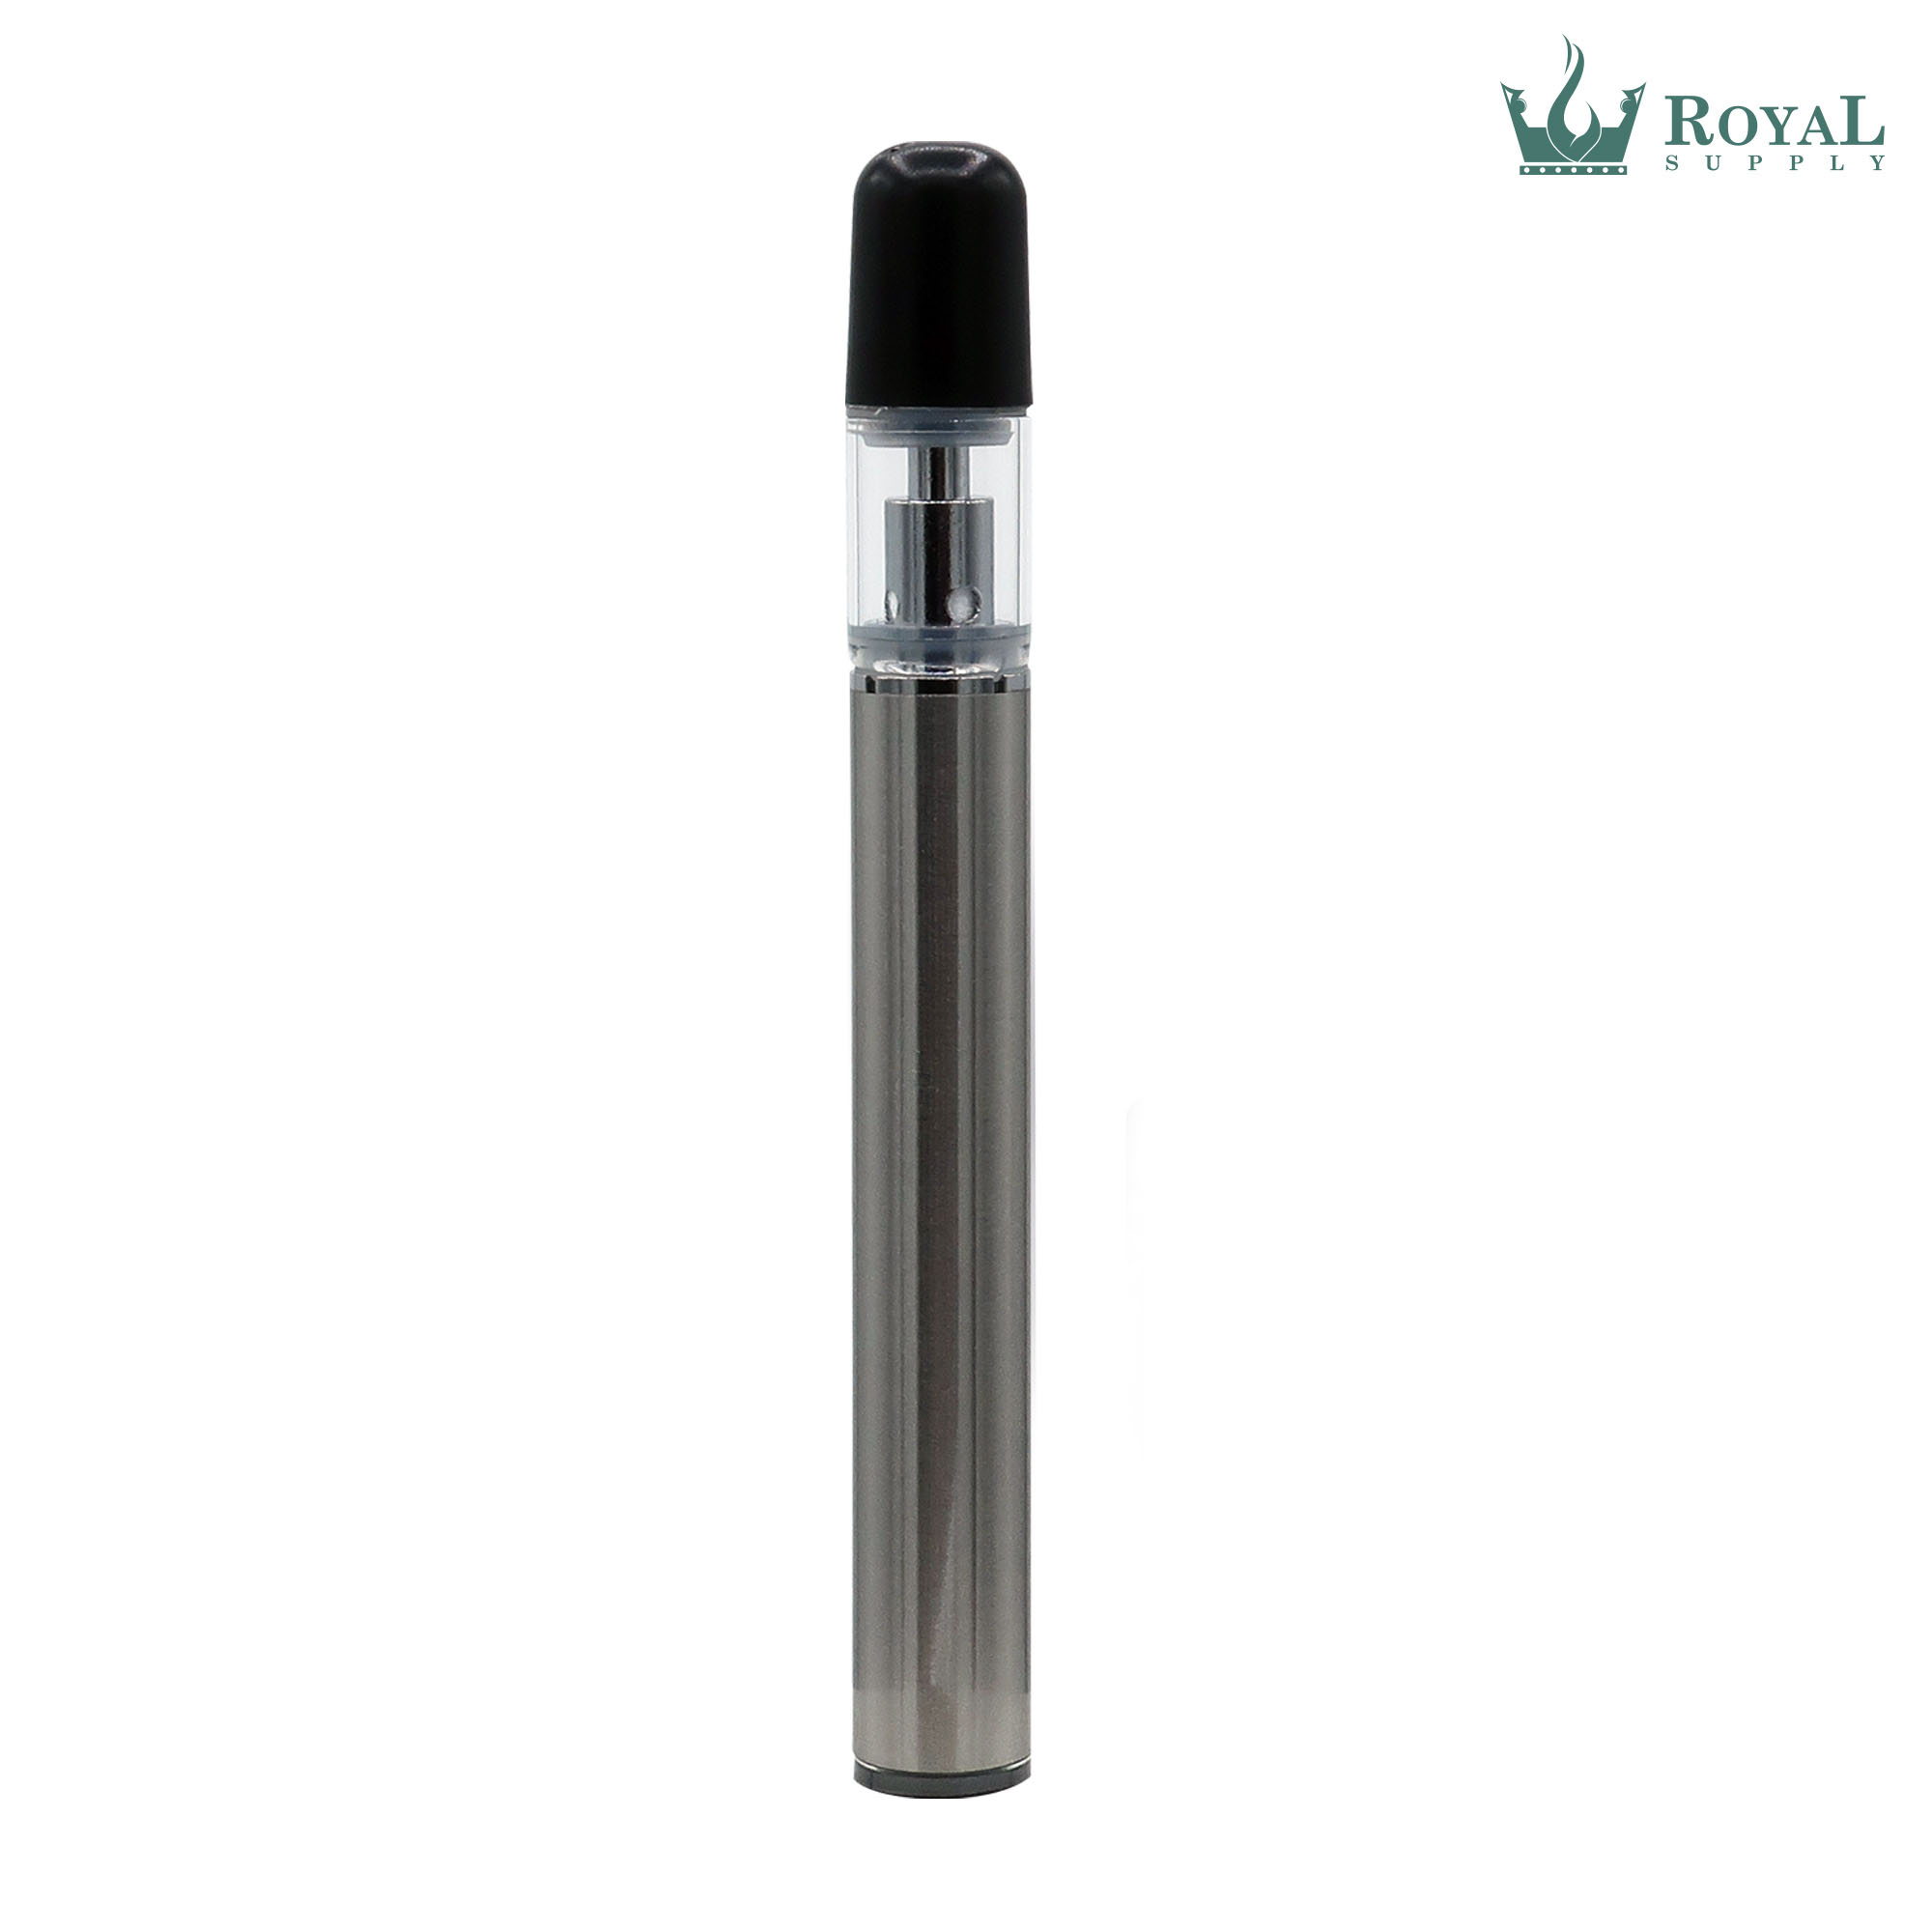 290 Mah Automatic Buttonless Disposable Vape Pen With Bullet Tip 0.3ml Ceramic Core Glass Cartridge